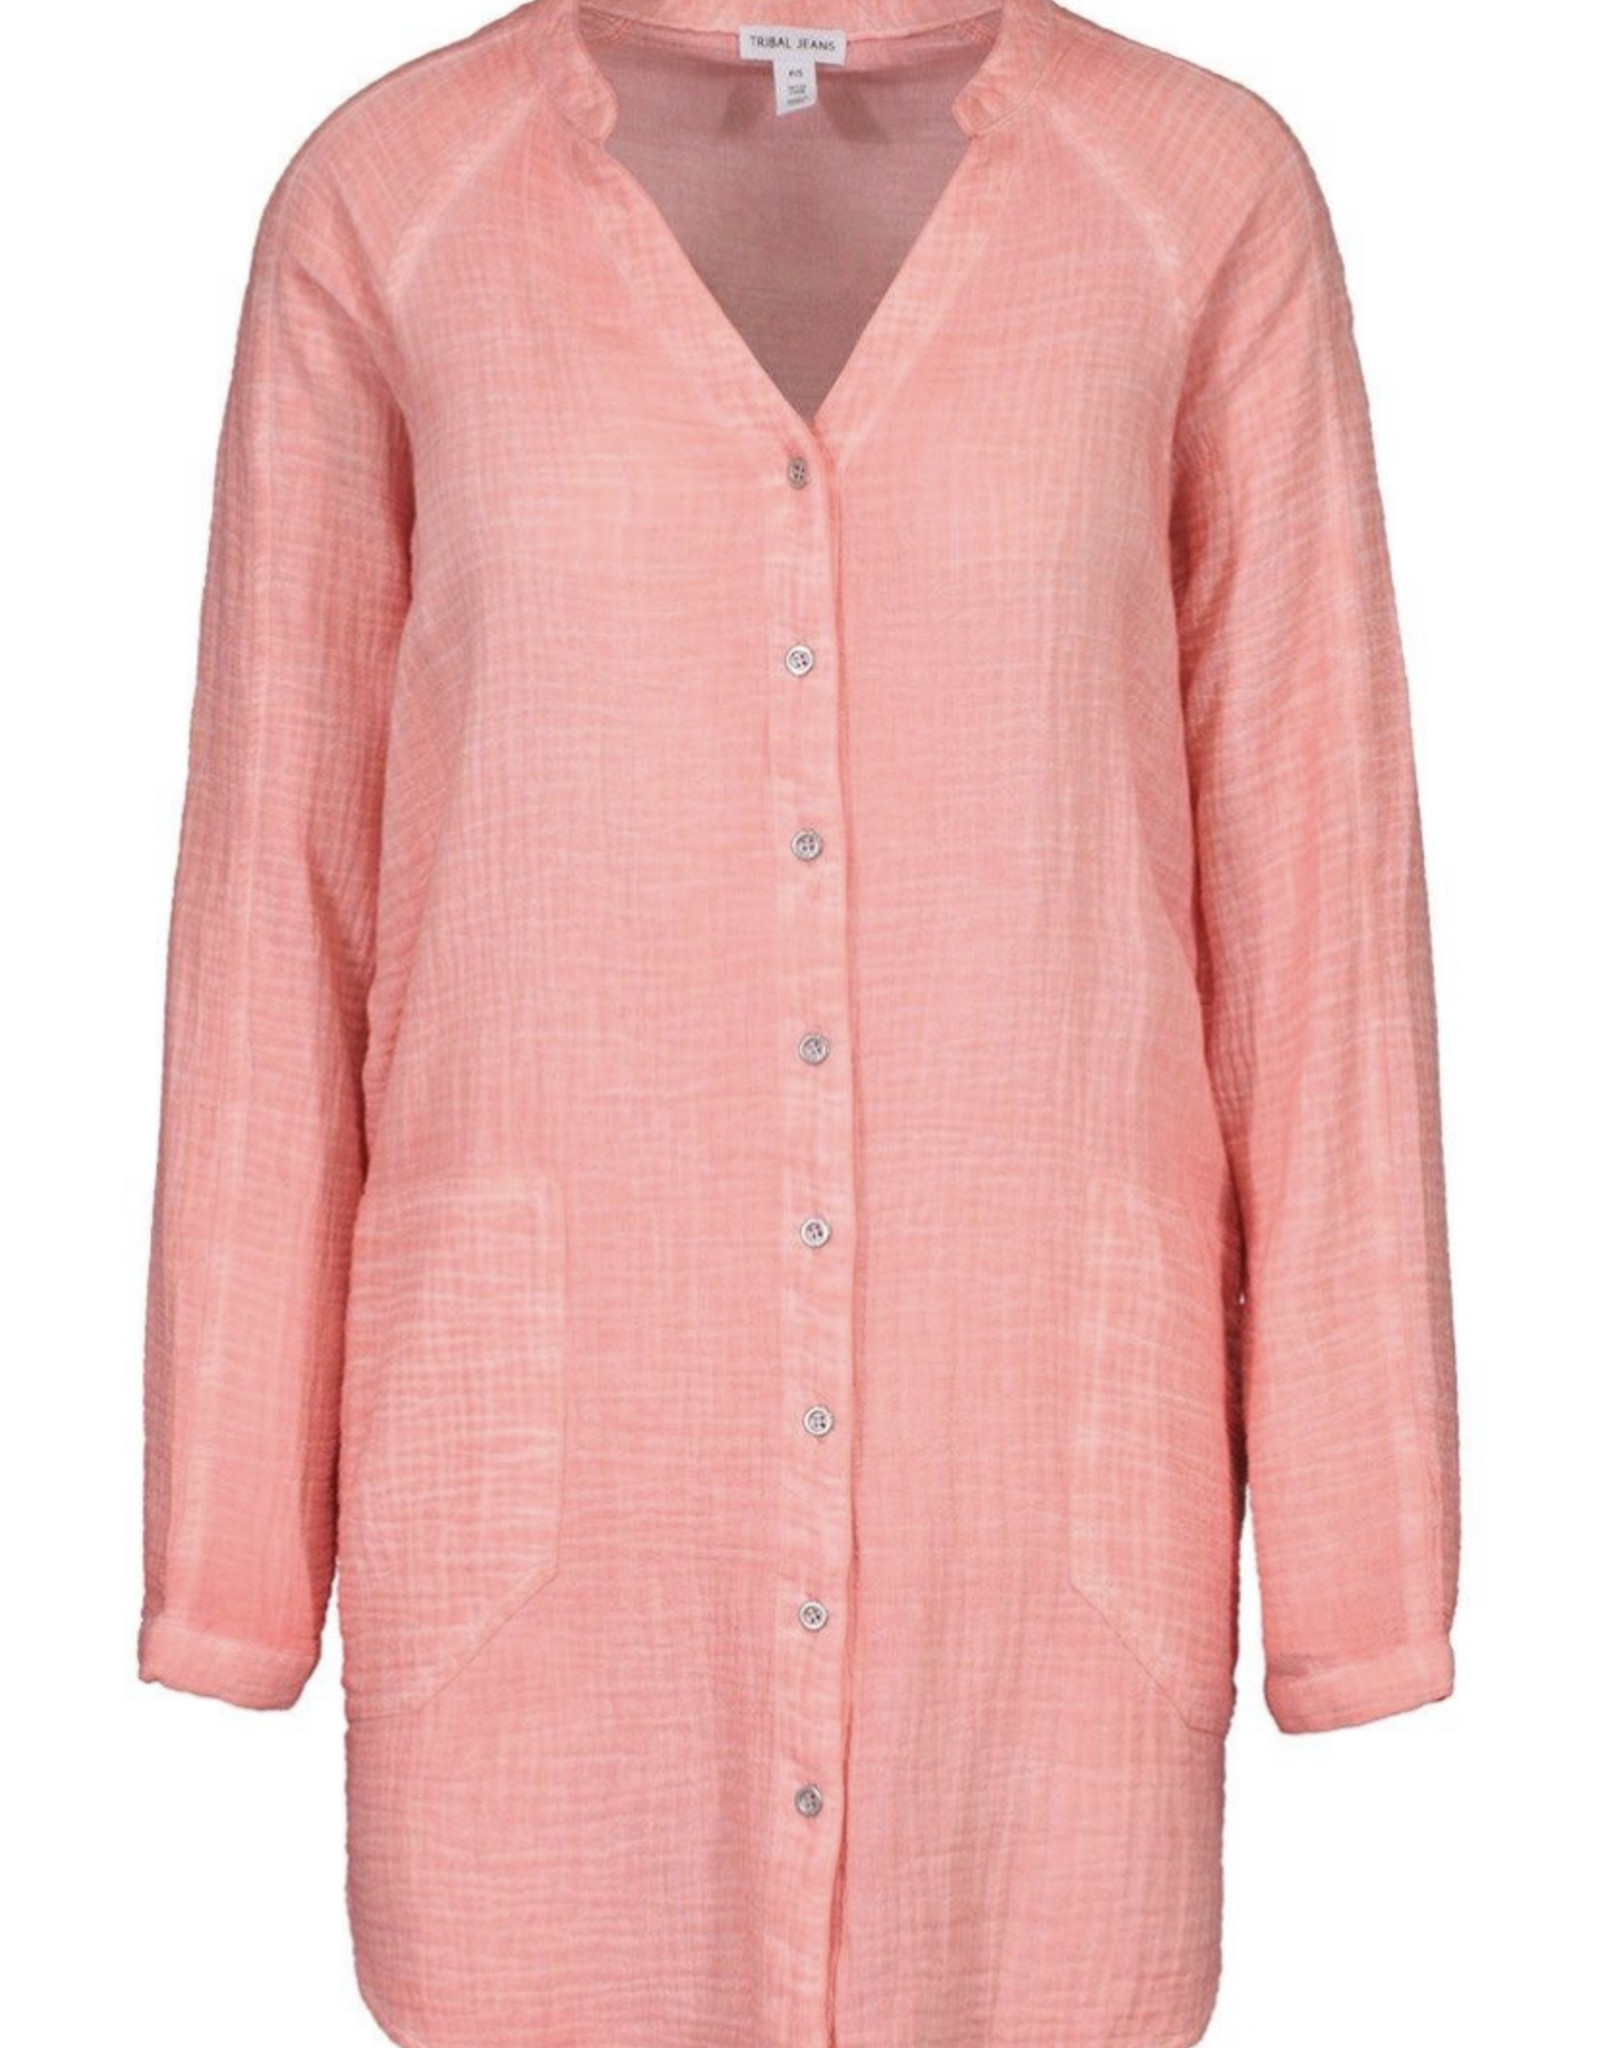 Button front tunic- Peach Tulip